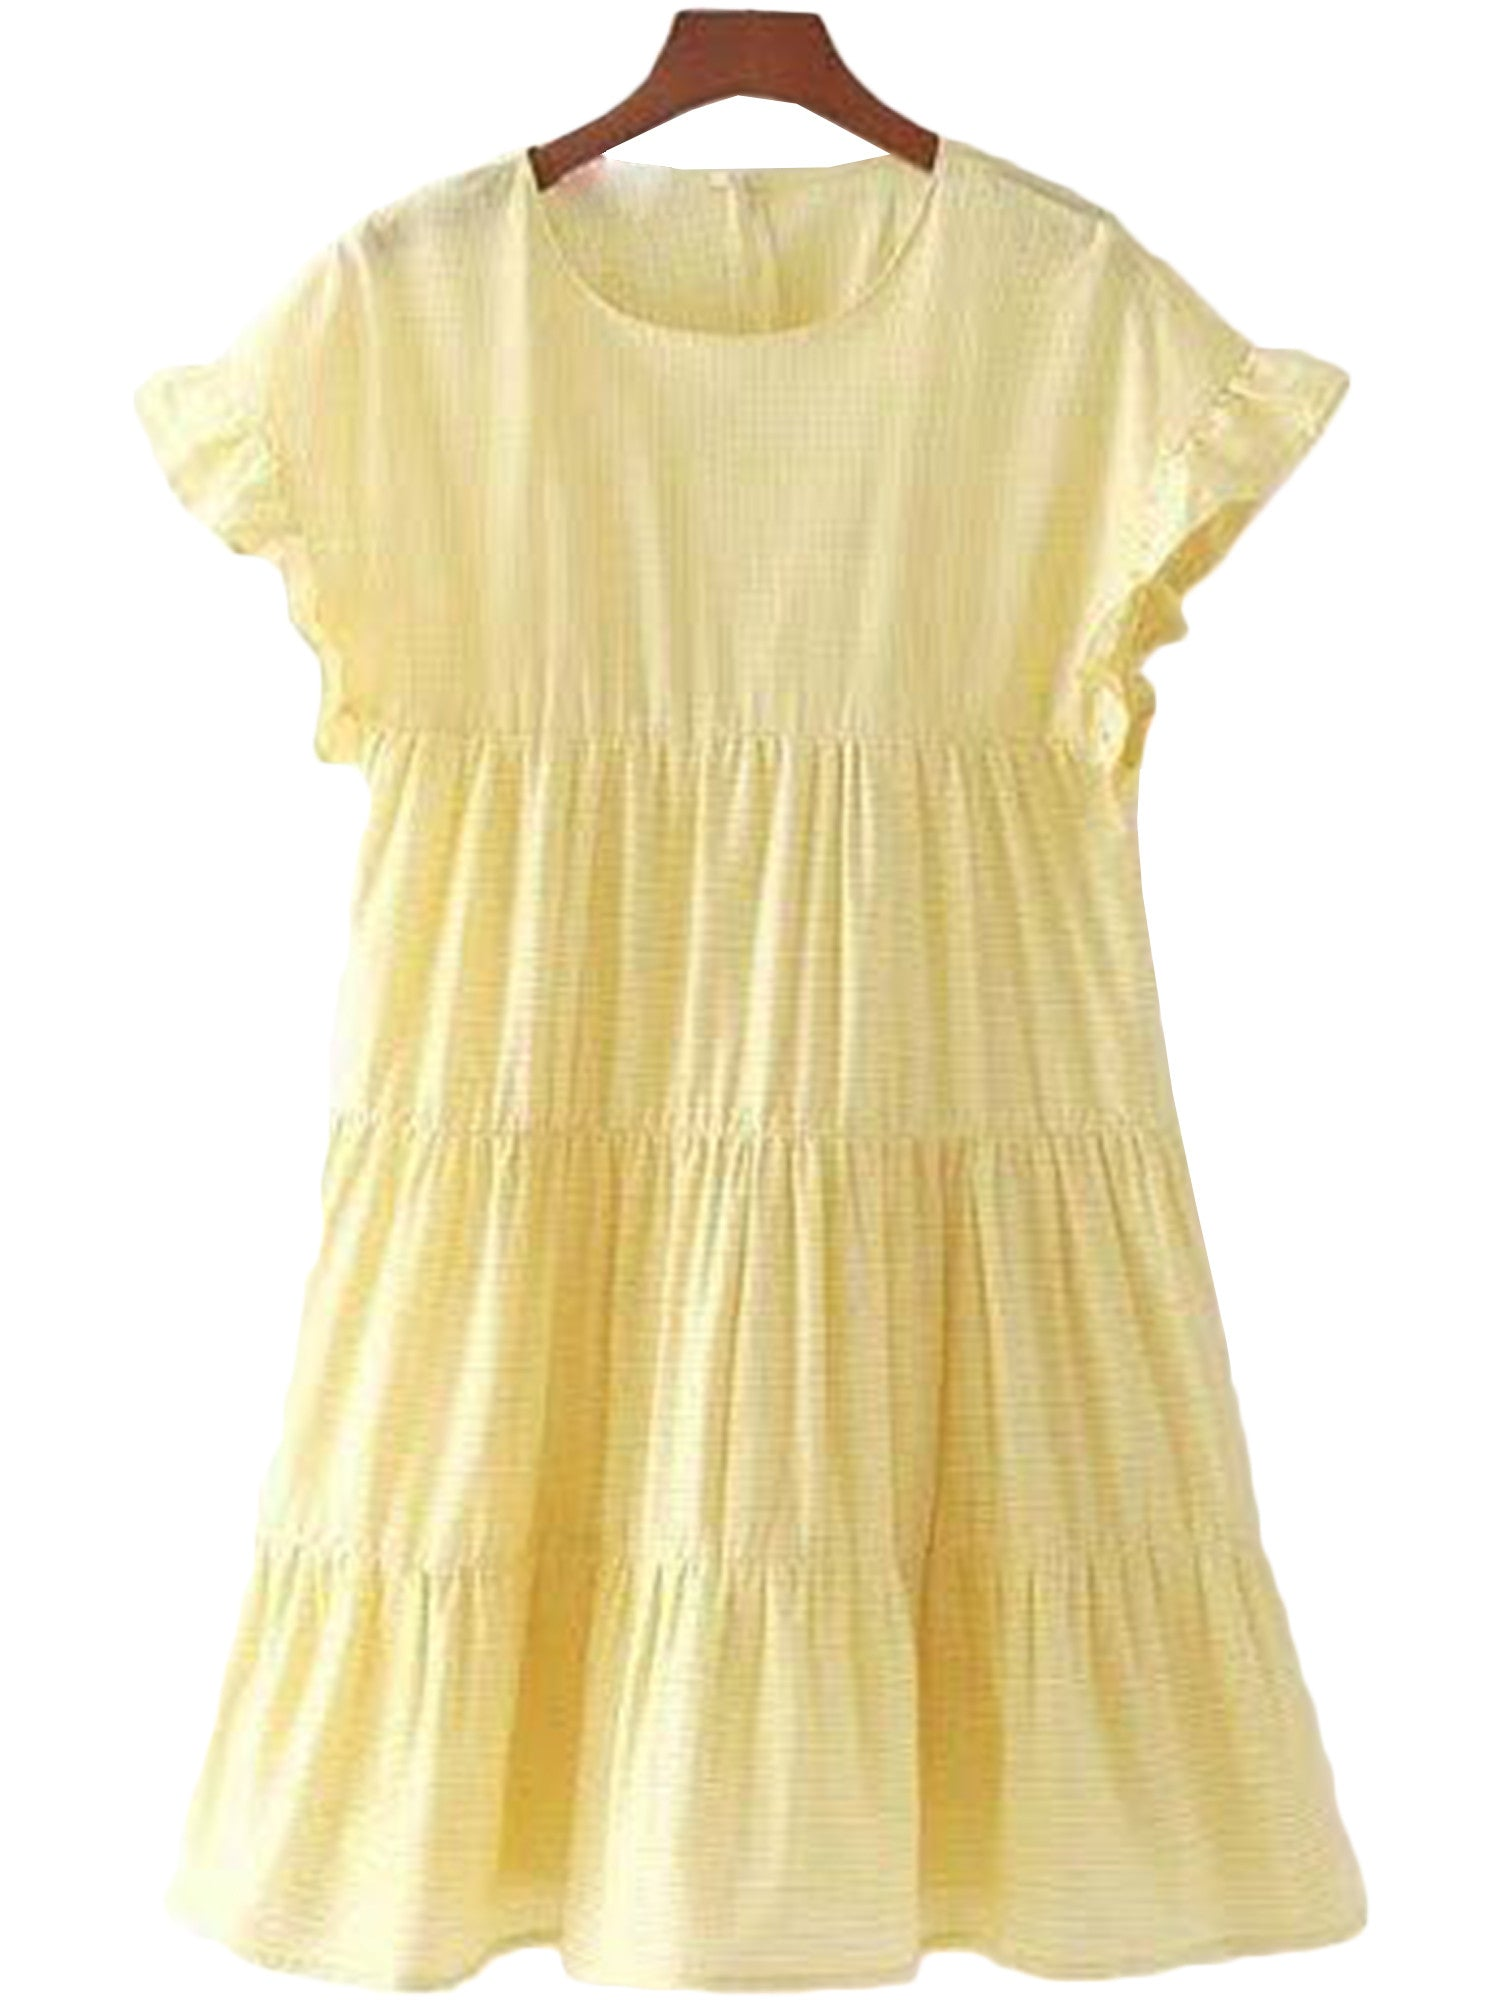 'Avery' Yellow Frilly Peplum Layered Dress